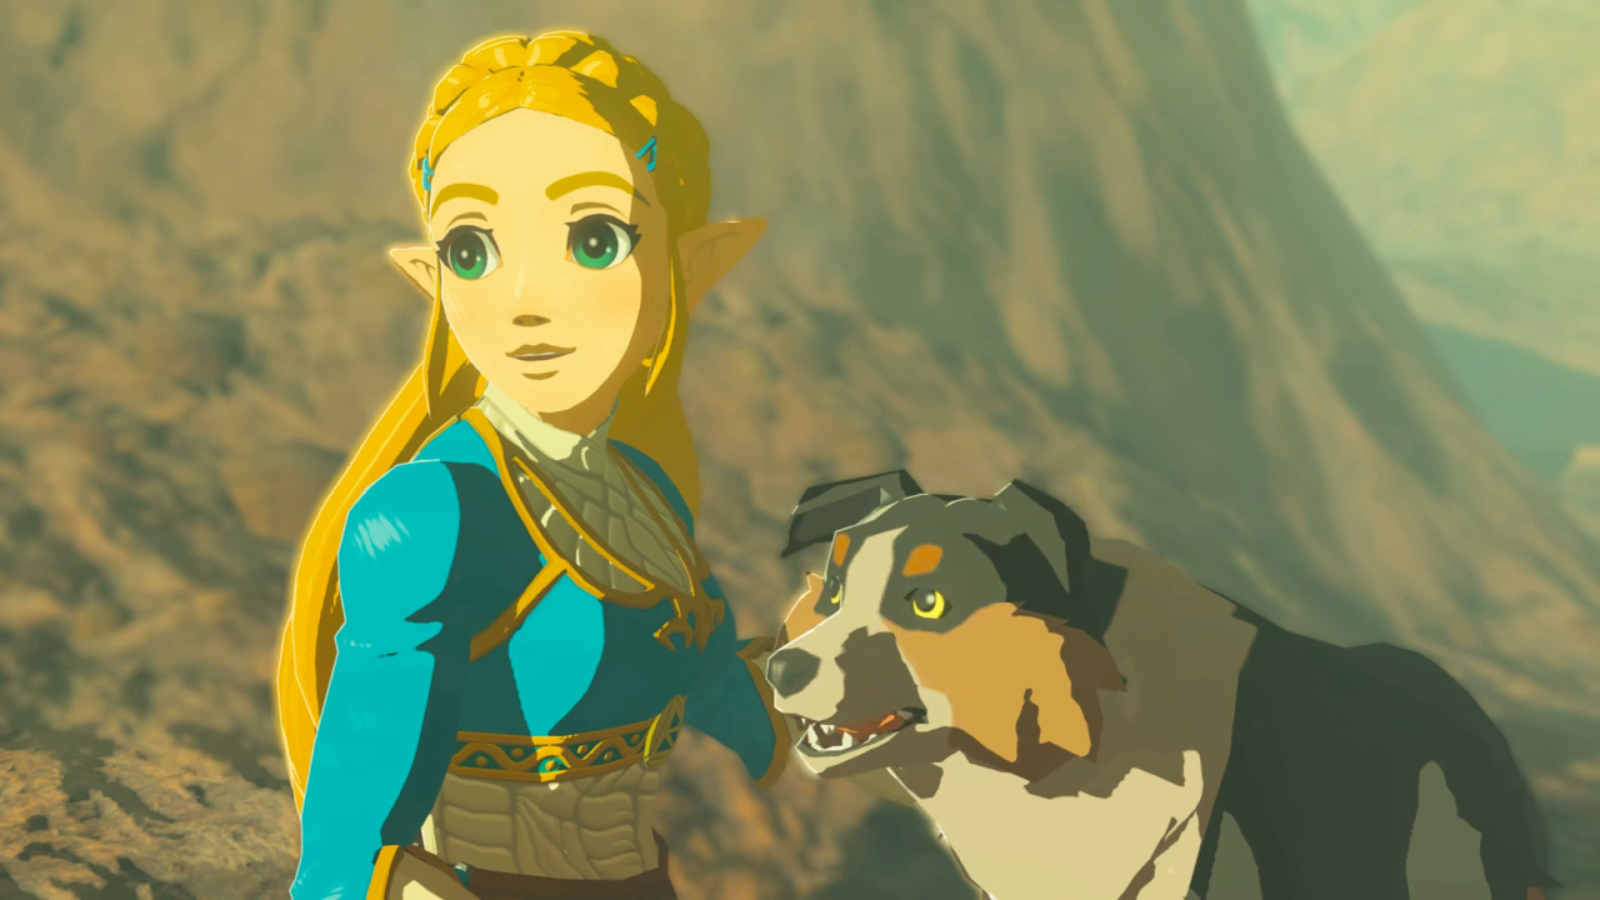 Zelda director has 'lots of ideas' for new DLC, games